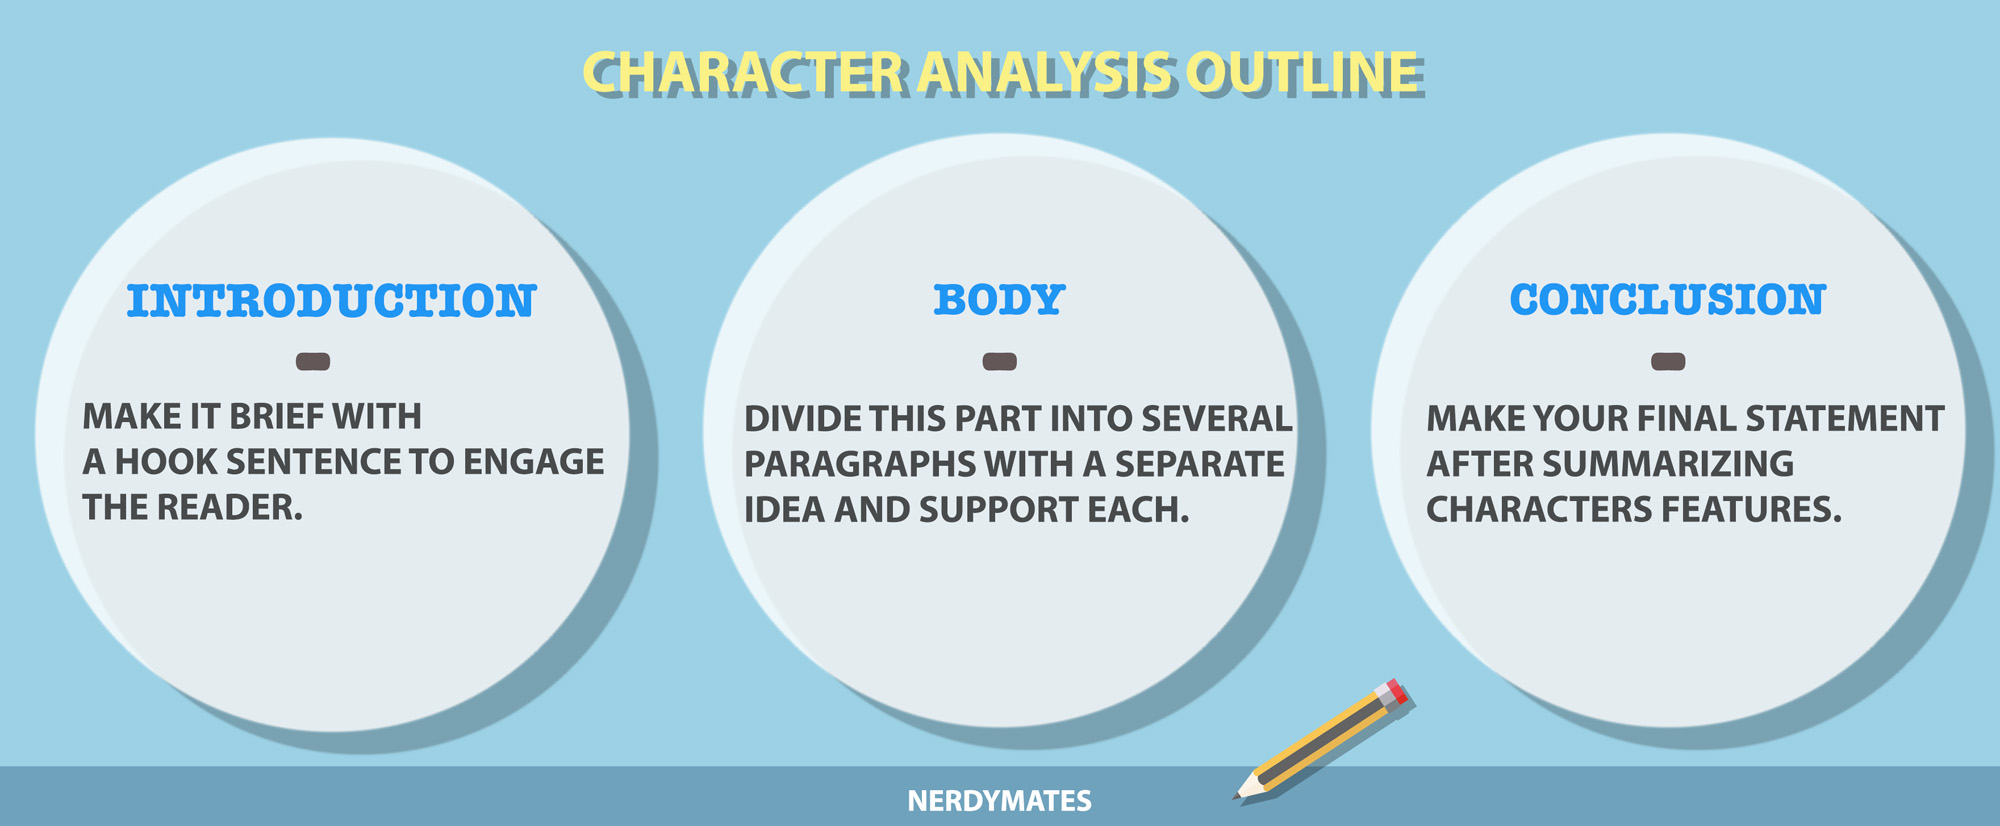 How to write an essay on character analysis